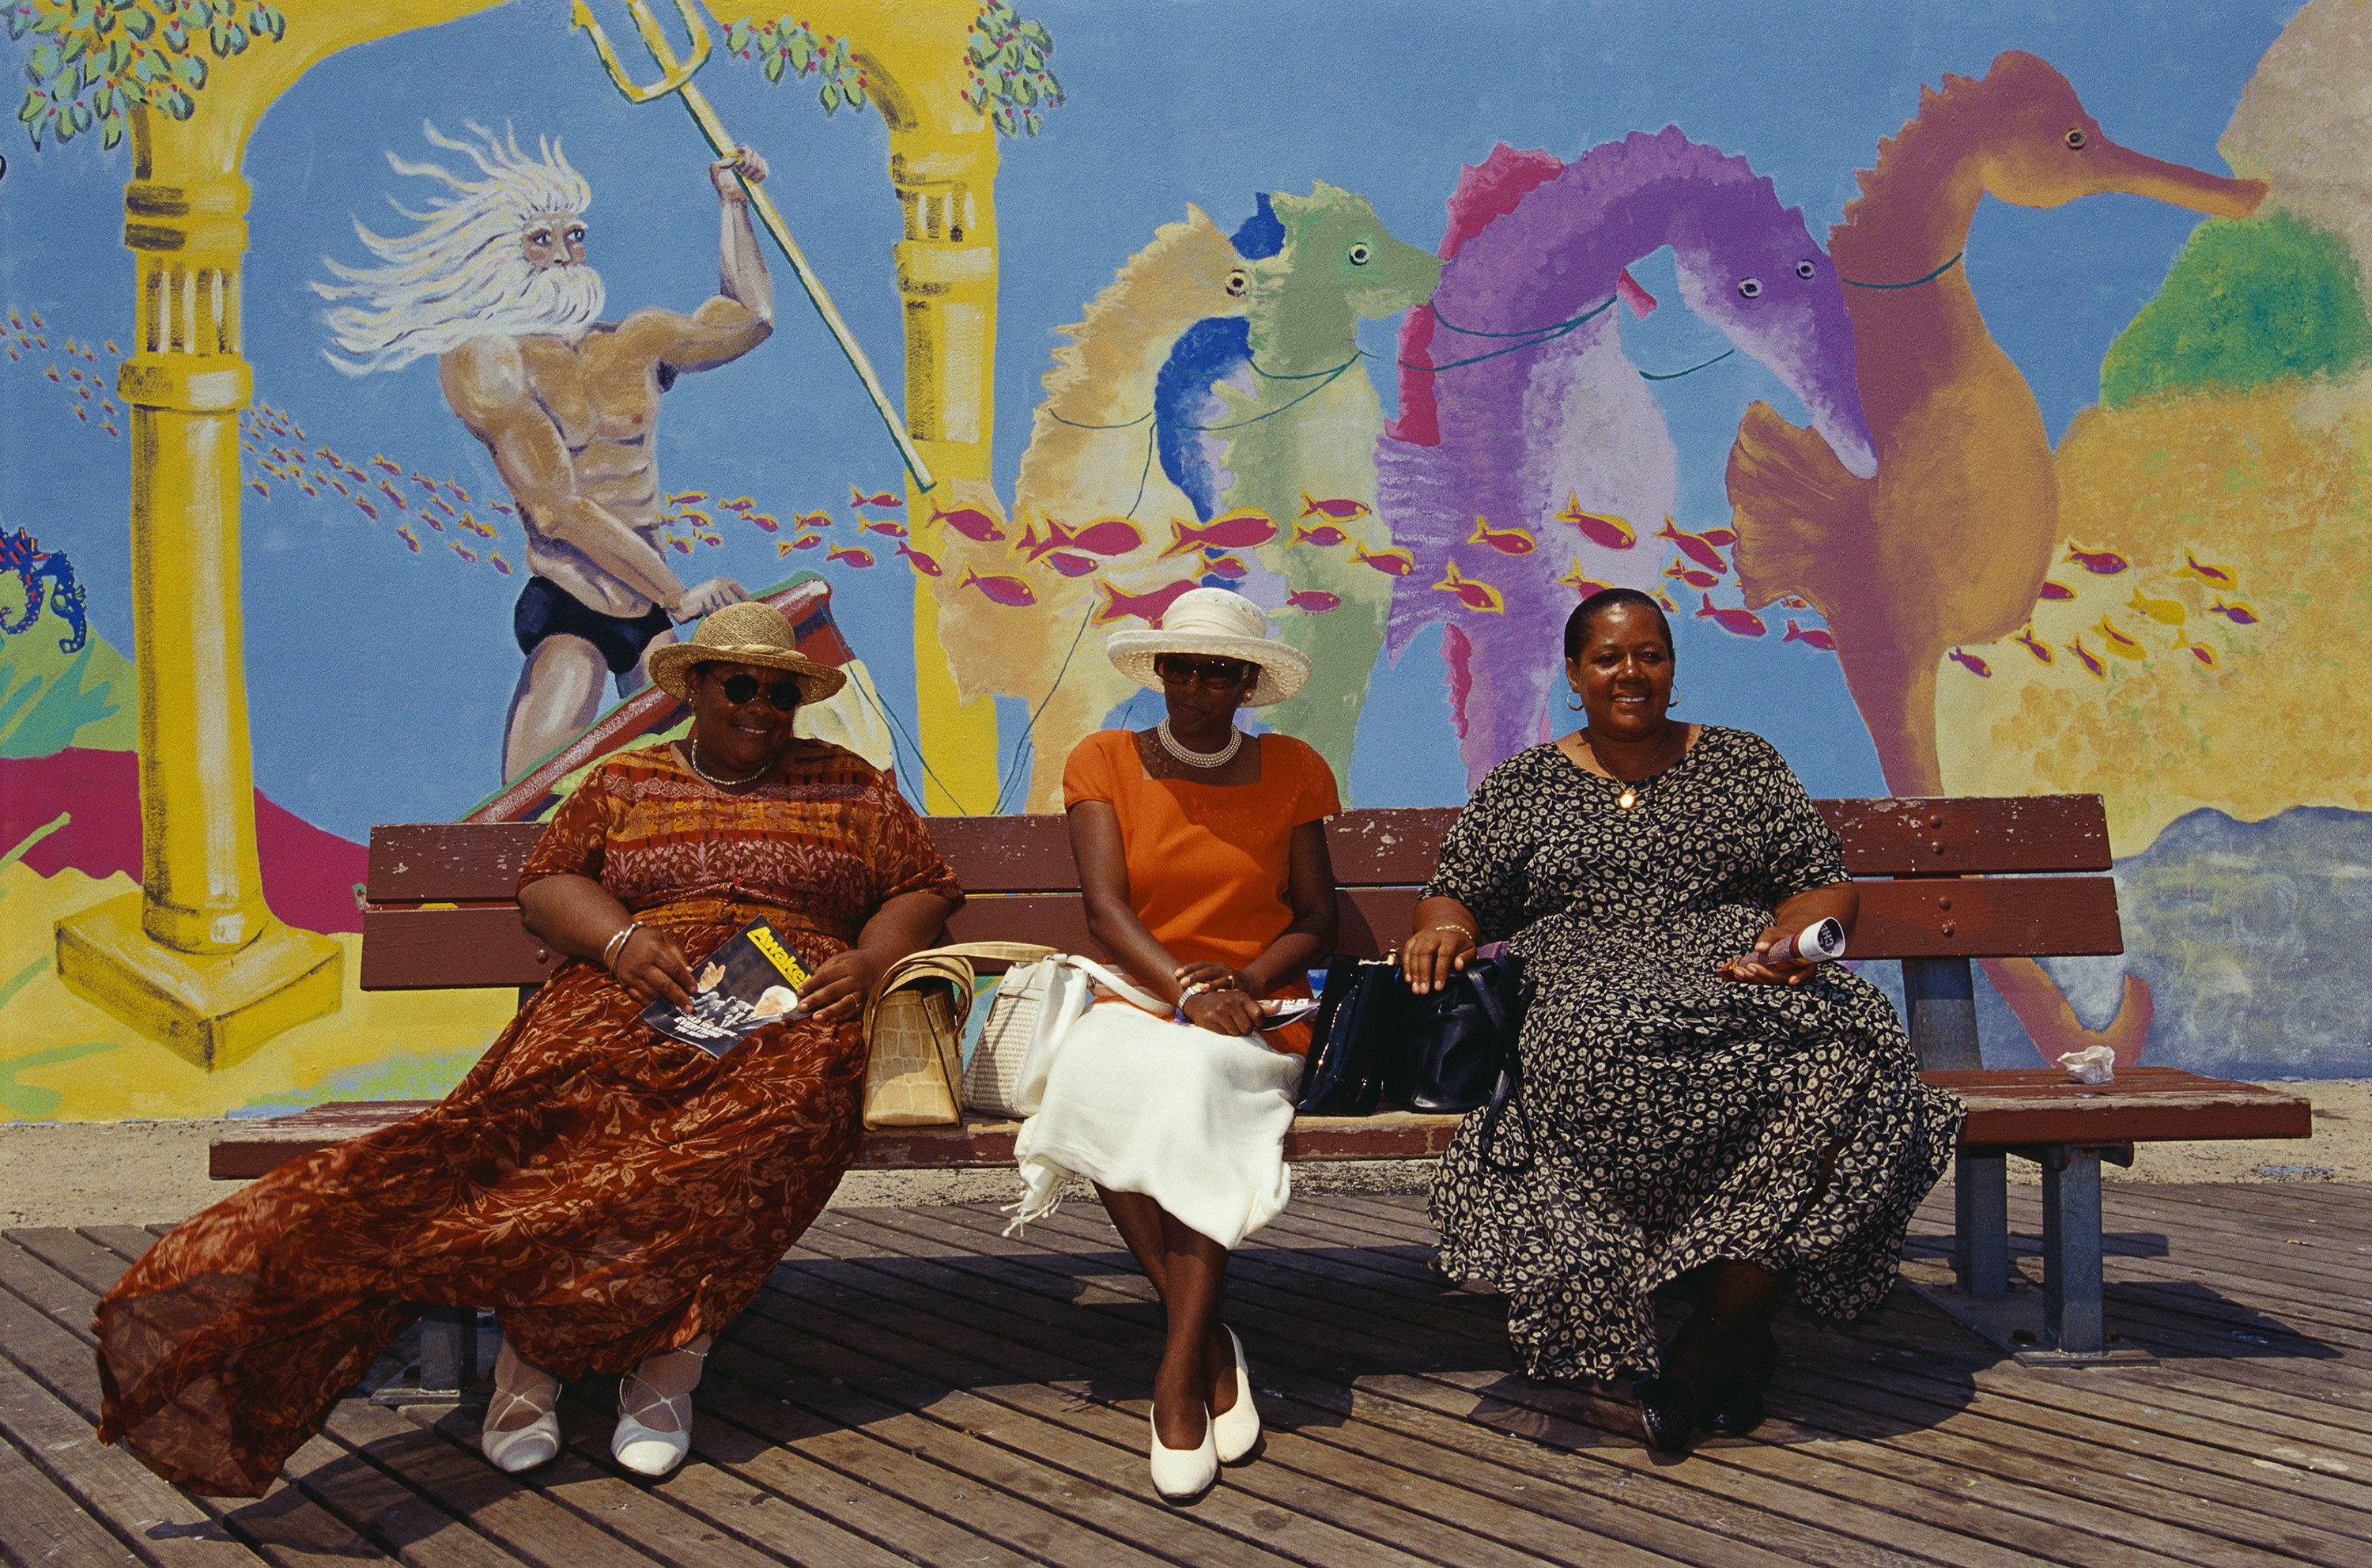 Three women in dressed on a bench in front of a mural depicting Poseidon